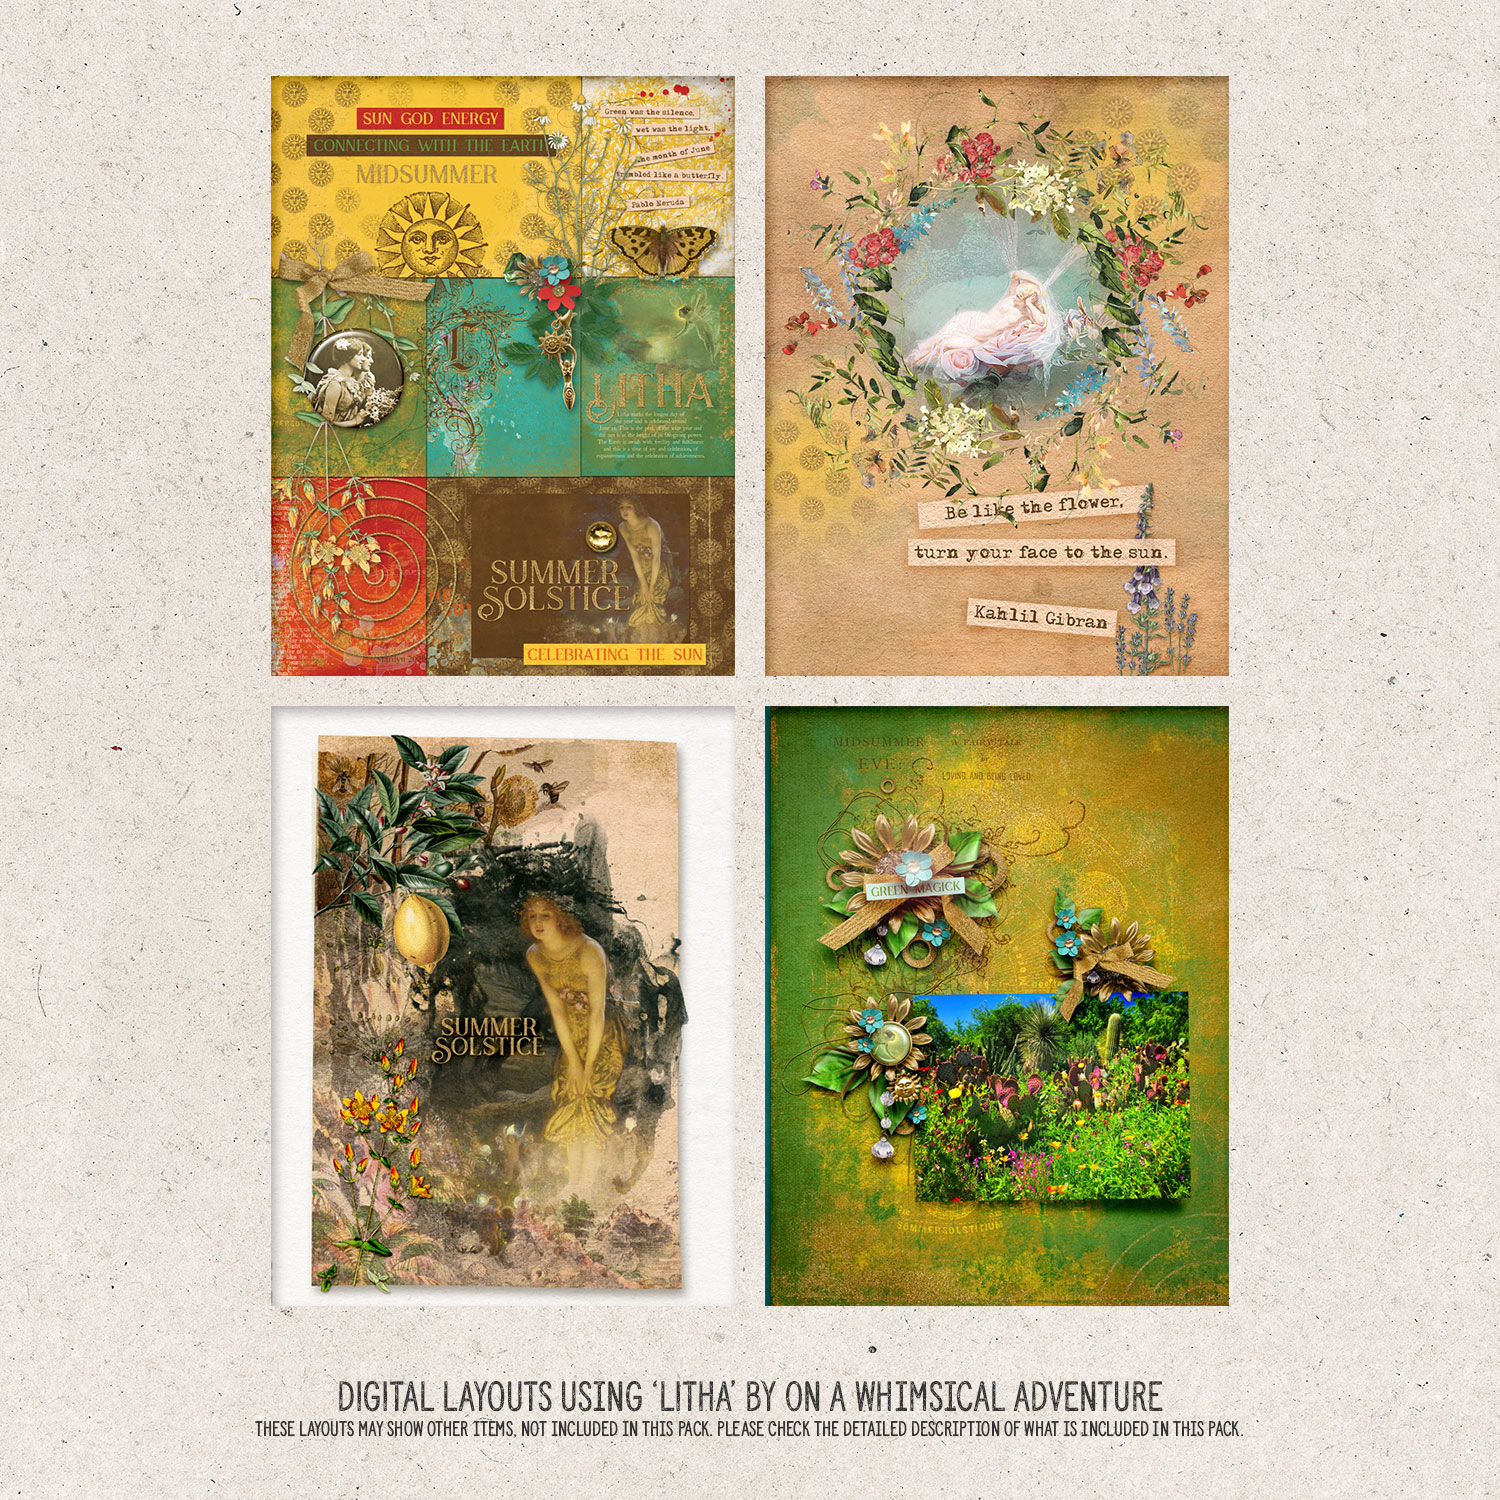 Digital layouts using Wheel Of The Year Litha by On A Whimsical Adventure